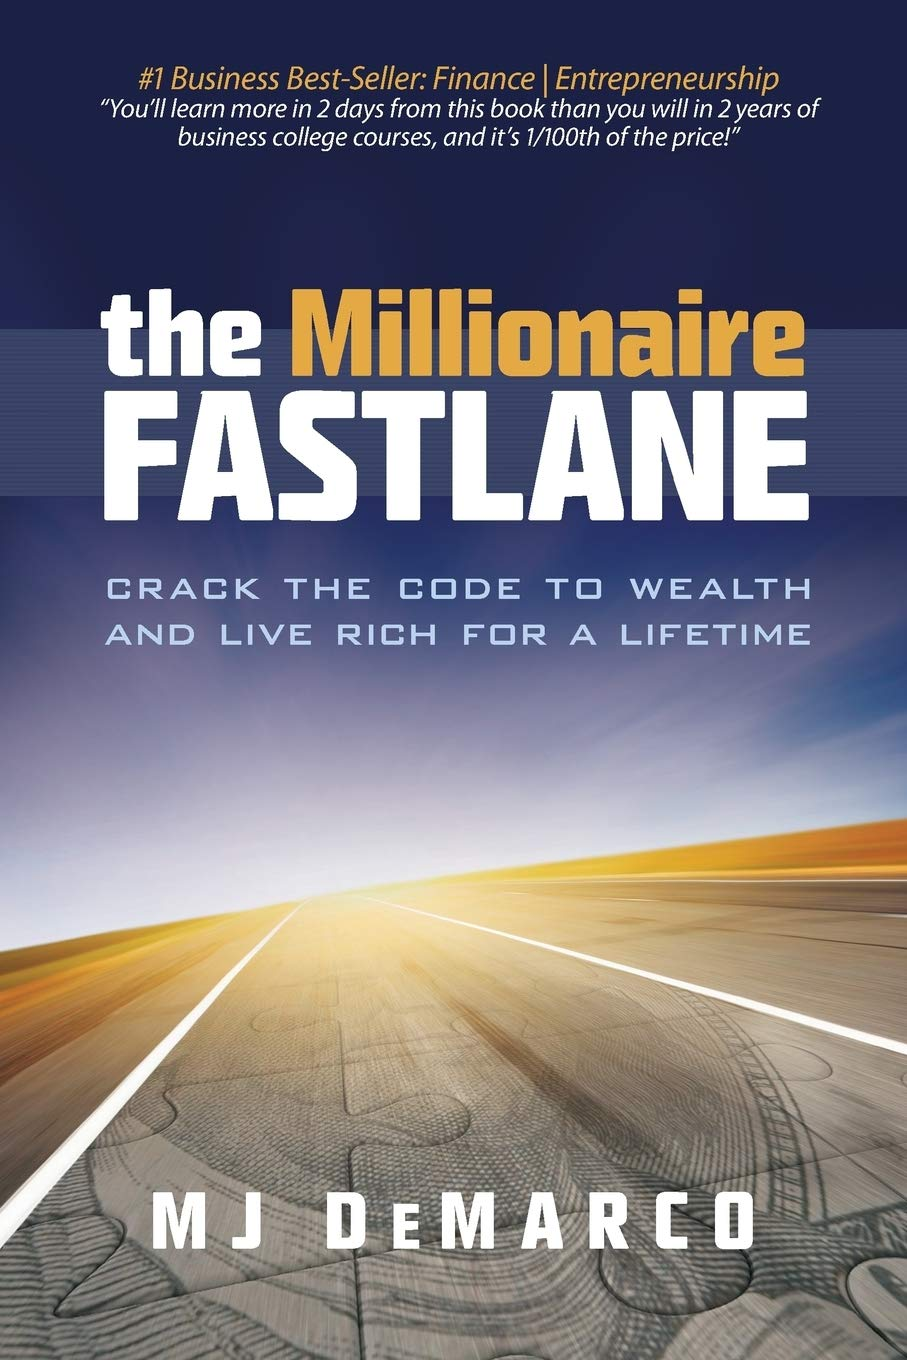 The Millionaire Fastlane: Crack the Code to Wealth and Live Rich for